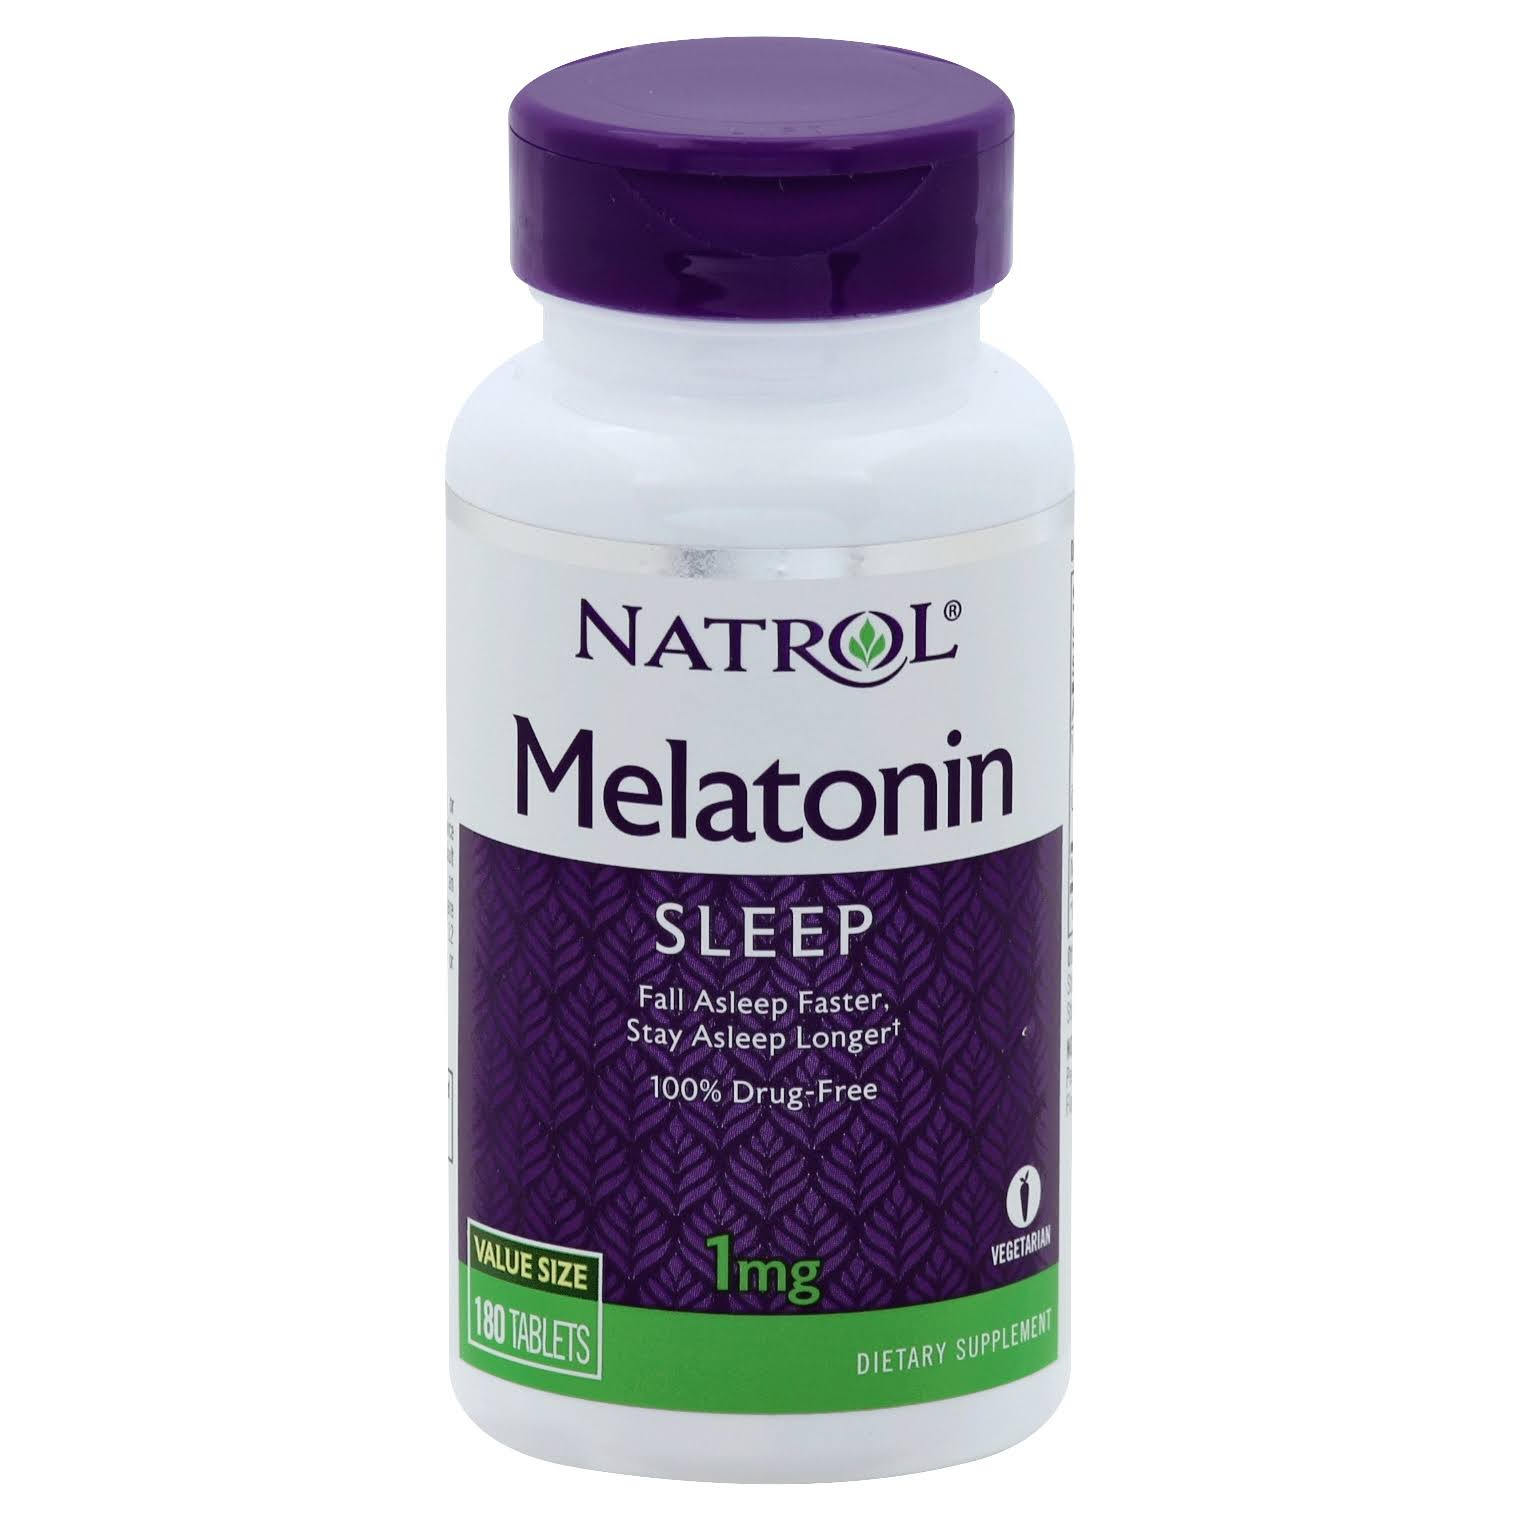 Natrol Night Time Sleep Aid Melatonin Supplements - 1mg, 180ct